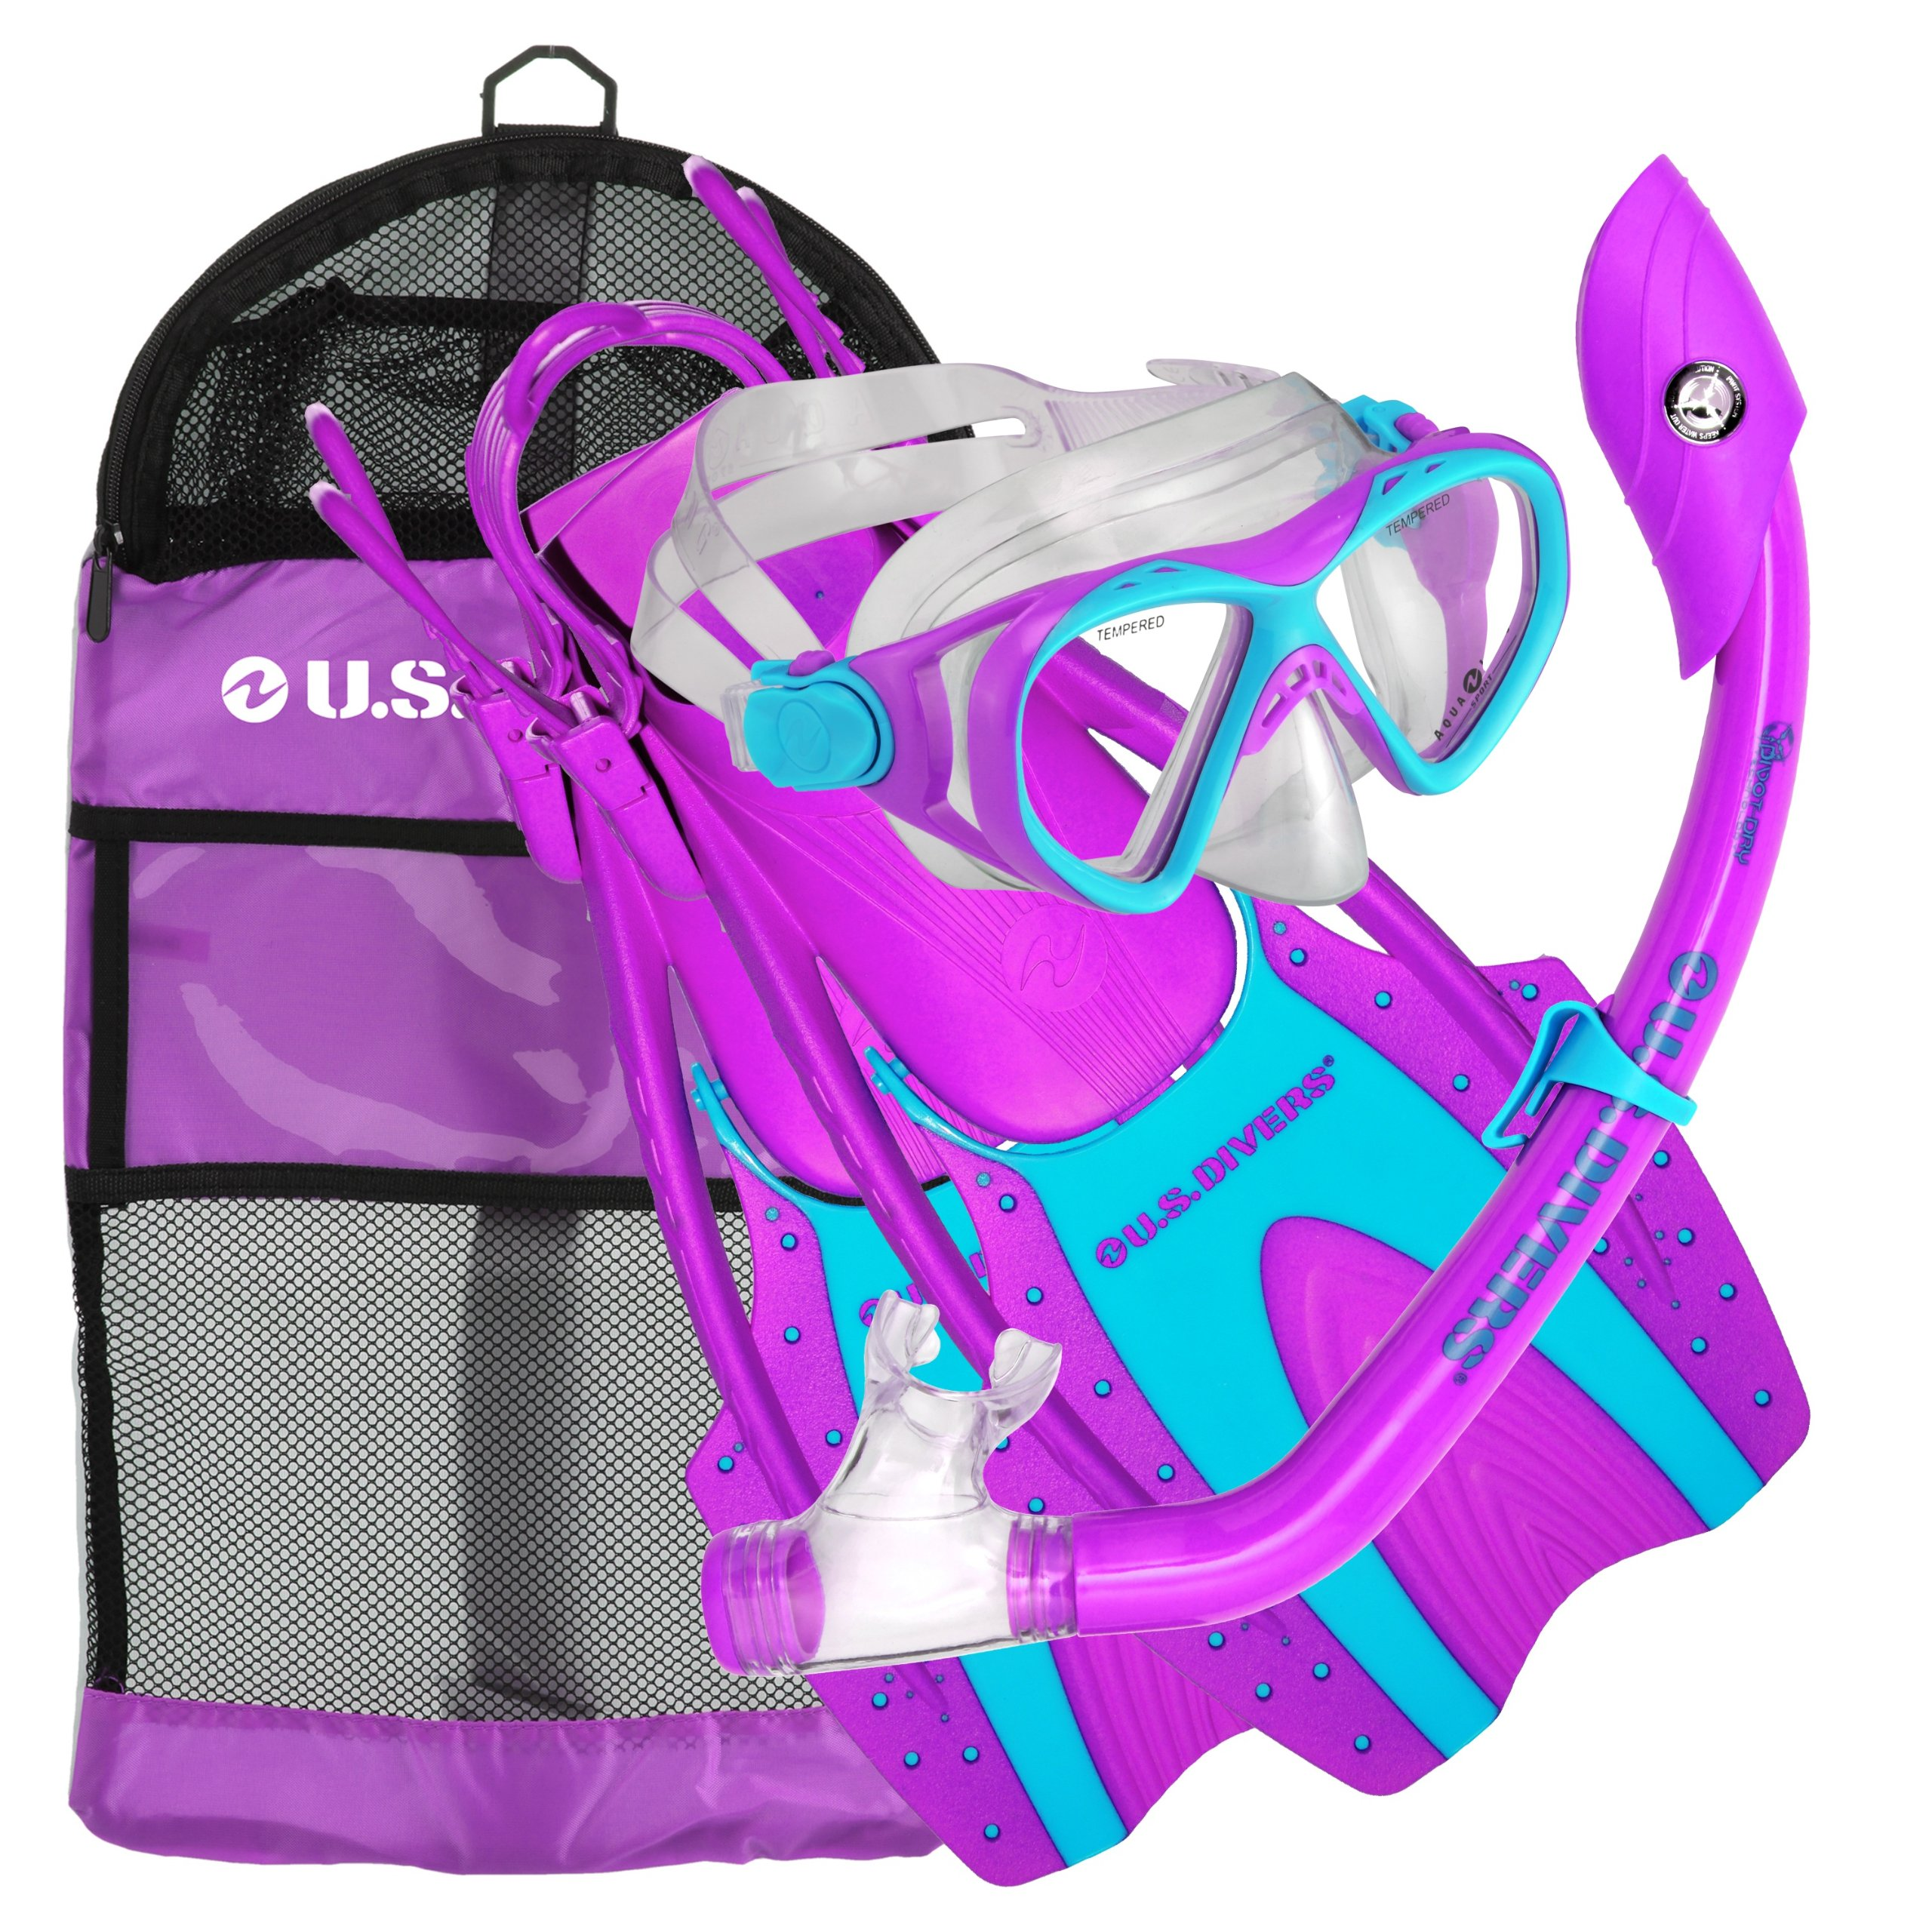 U.S. Divers Youth Buzz Jr. Snorkeling Set Purple Small/Medium by U.S. Divers